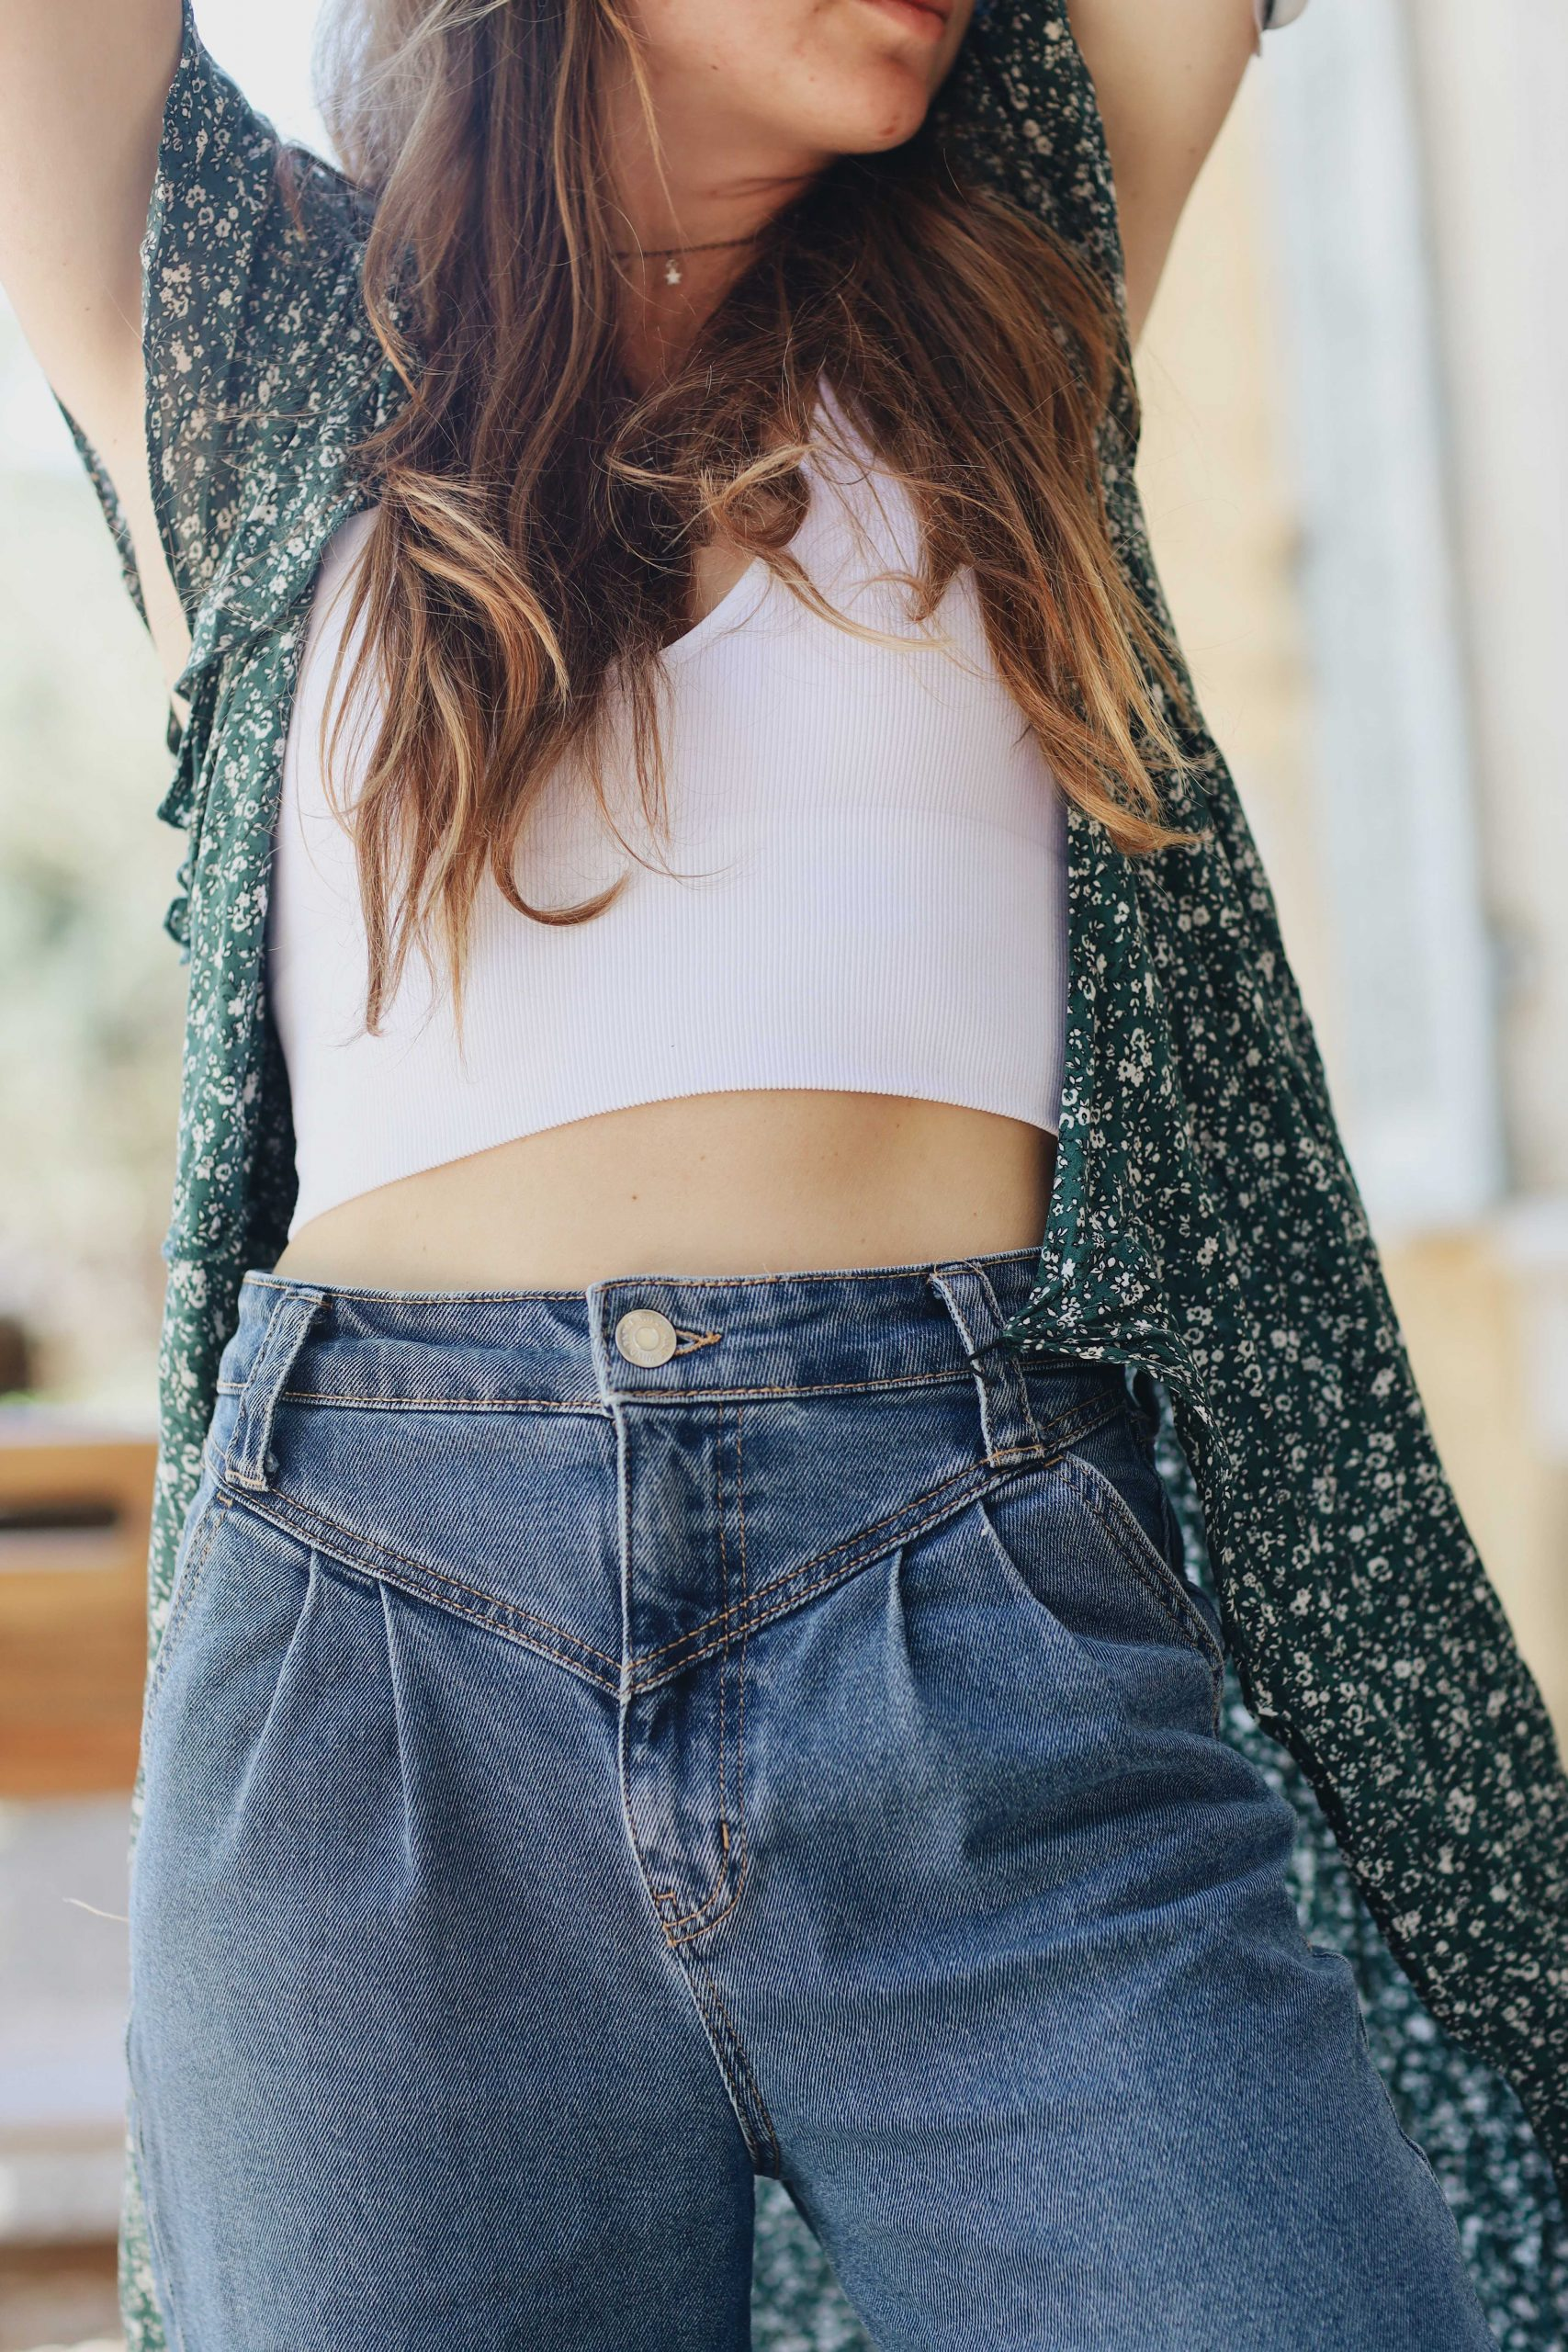 15 Best Mom Jeans (2021)